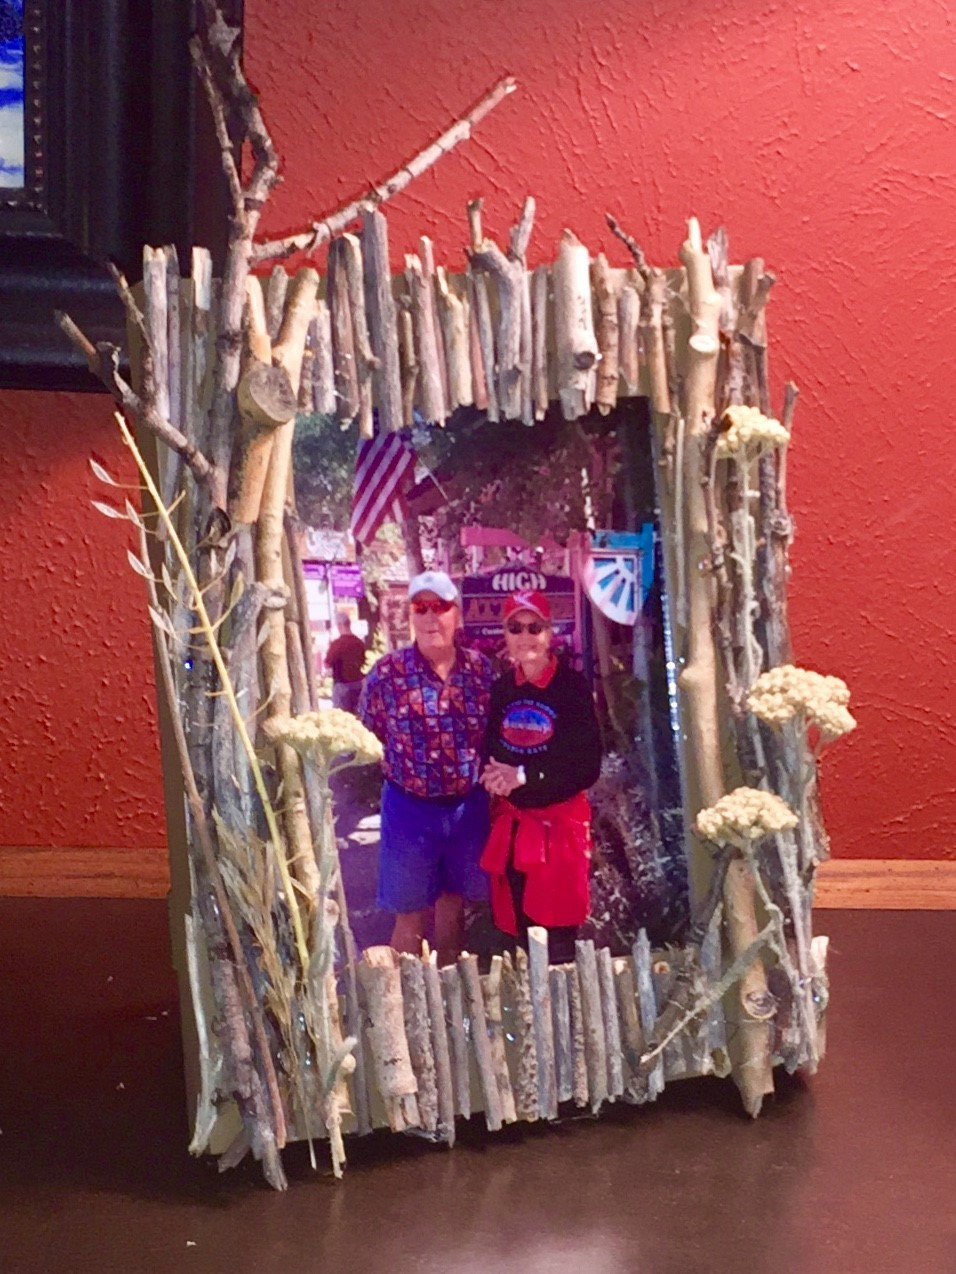 Tim displays a photo in his completed memento frame.